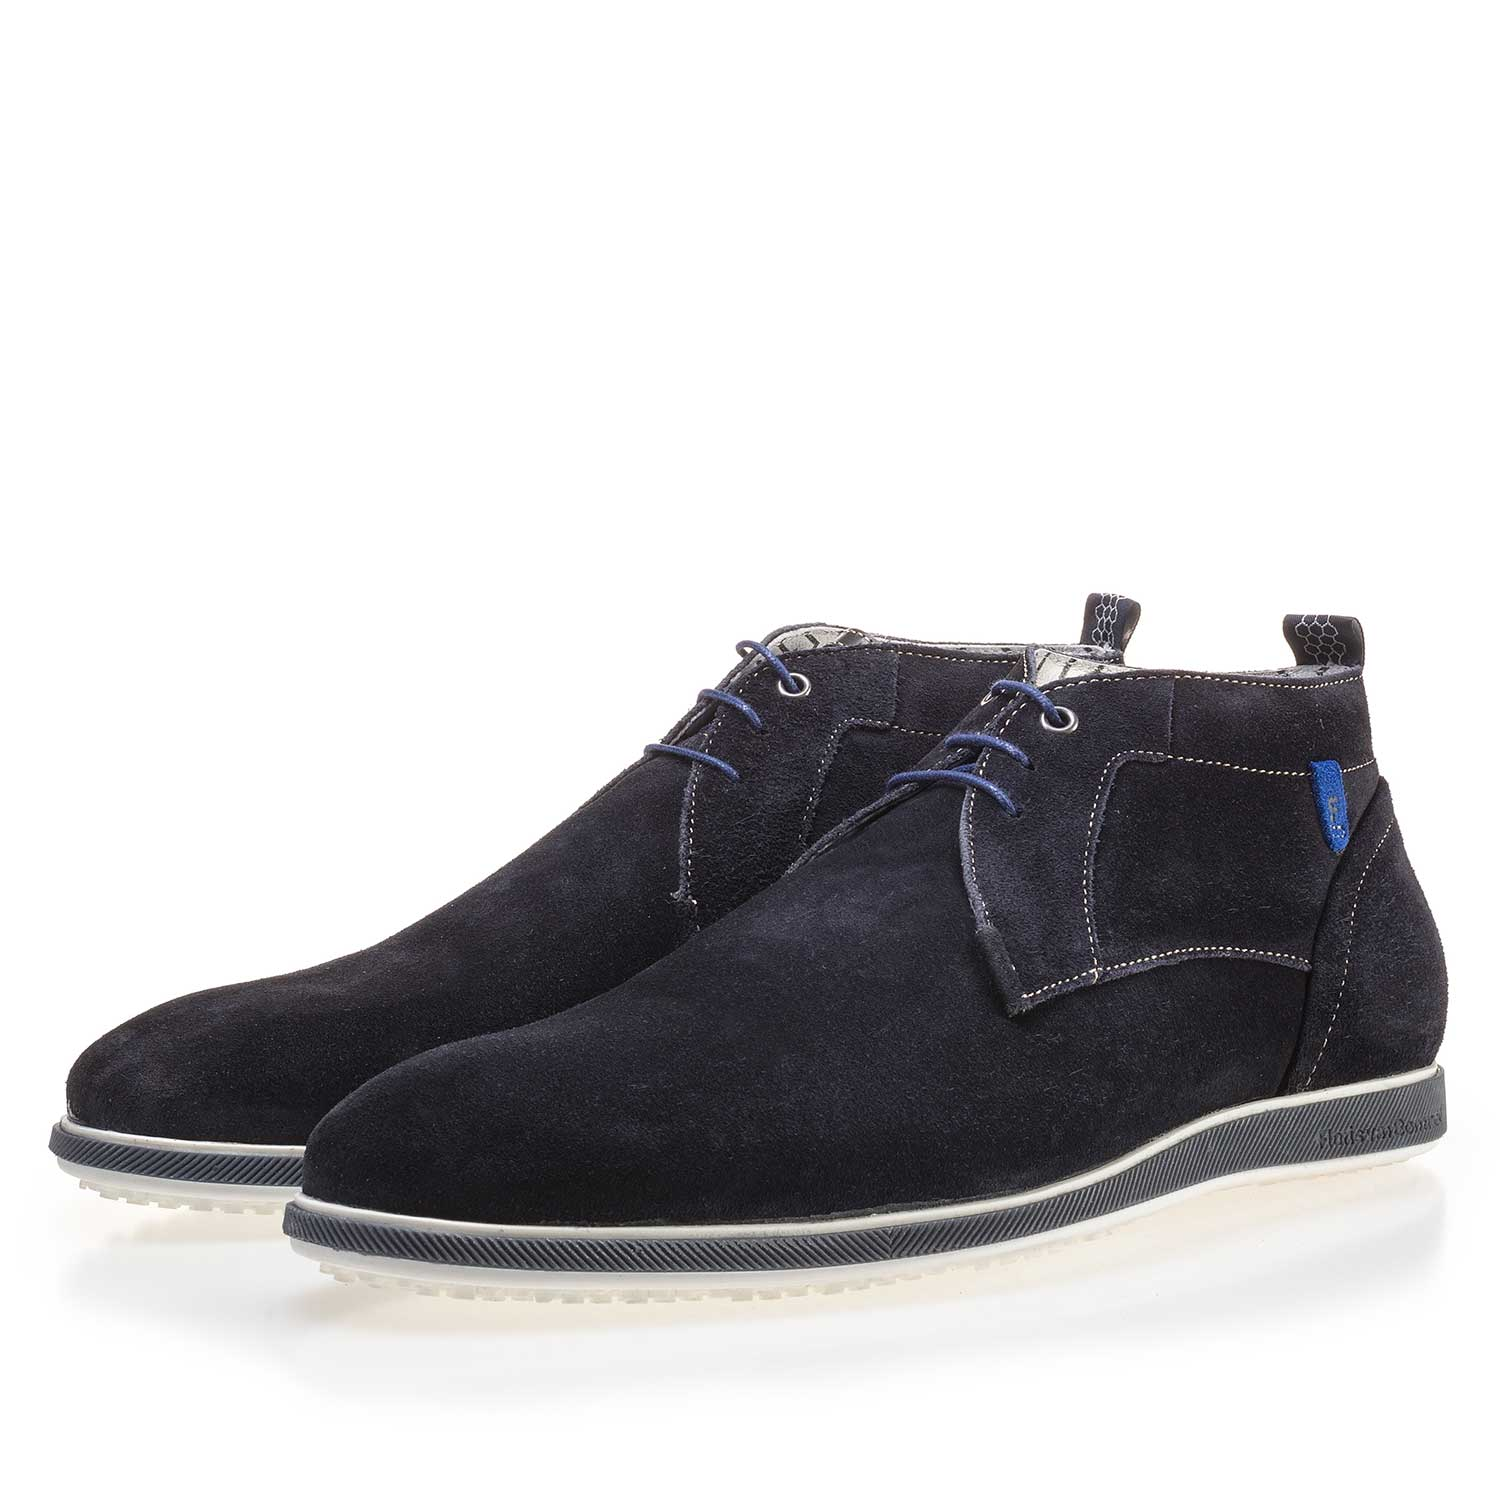 10055/00 - Dark blue suede leather lace boot